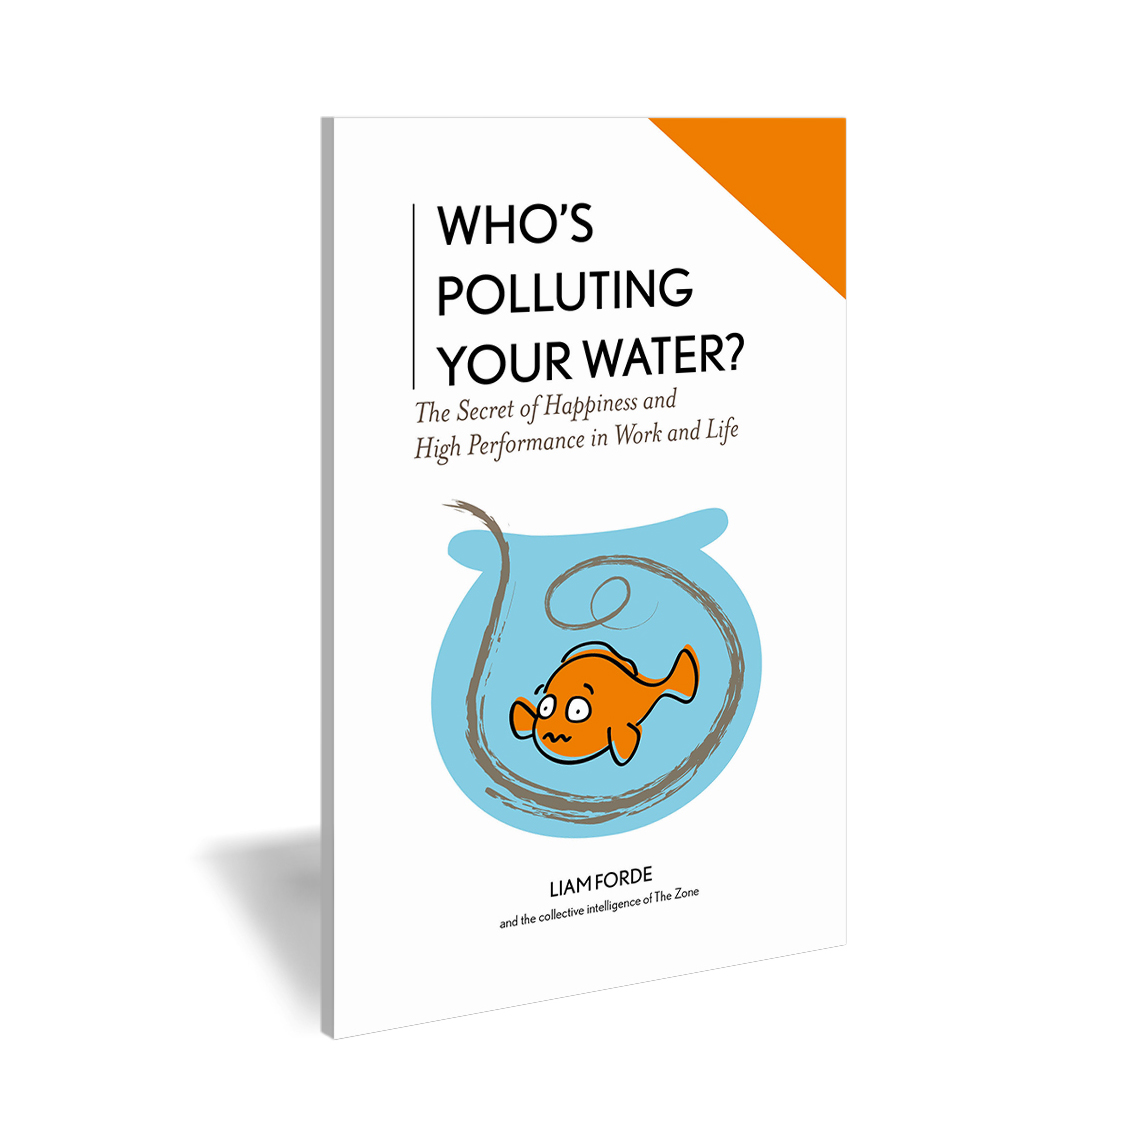 """Who's polluting your water?"" - Download our book to explore the secret of happiness and high performance in work and life."